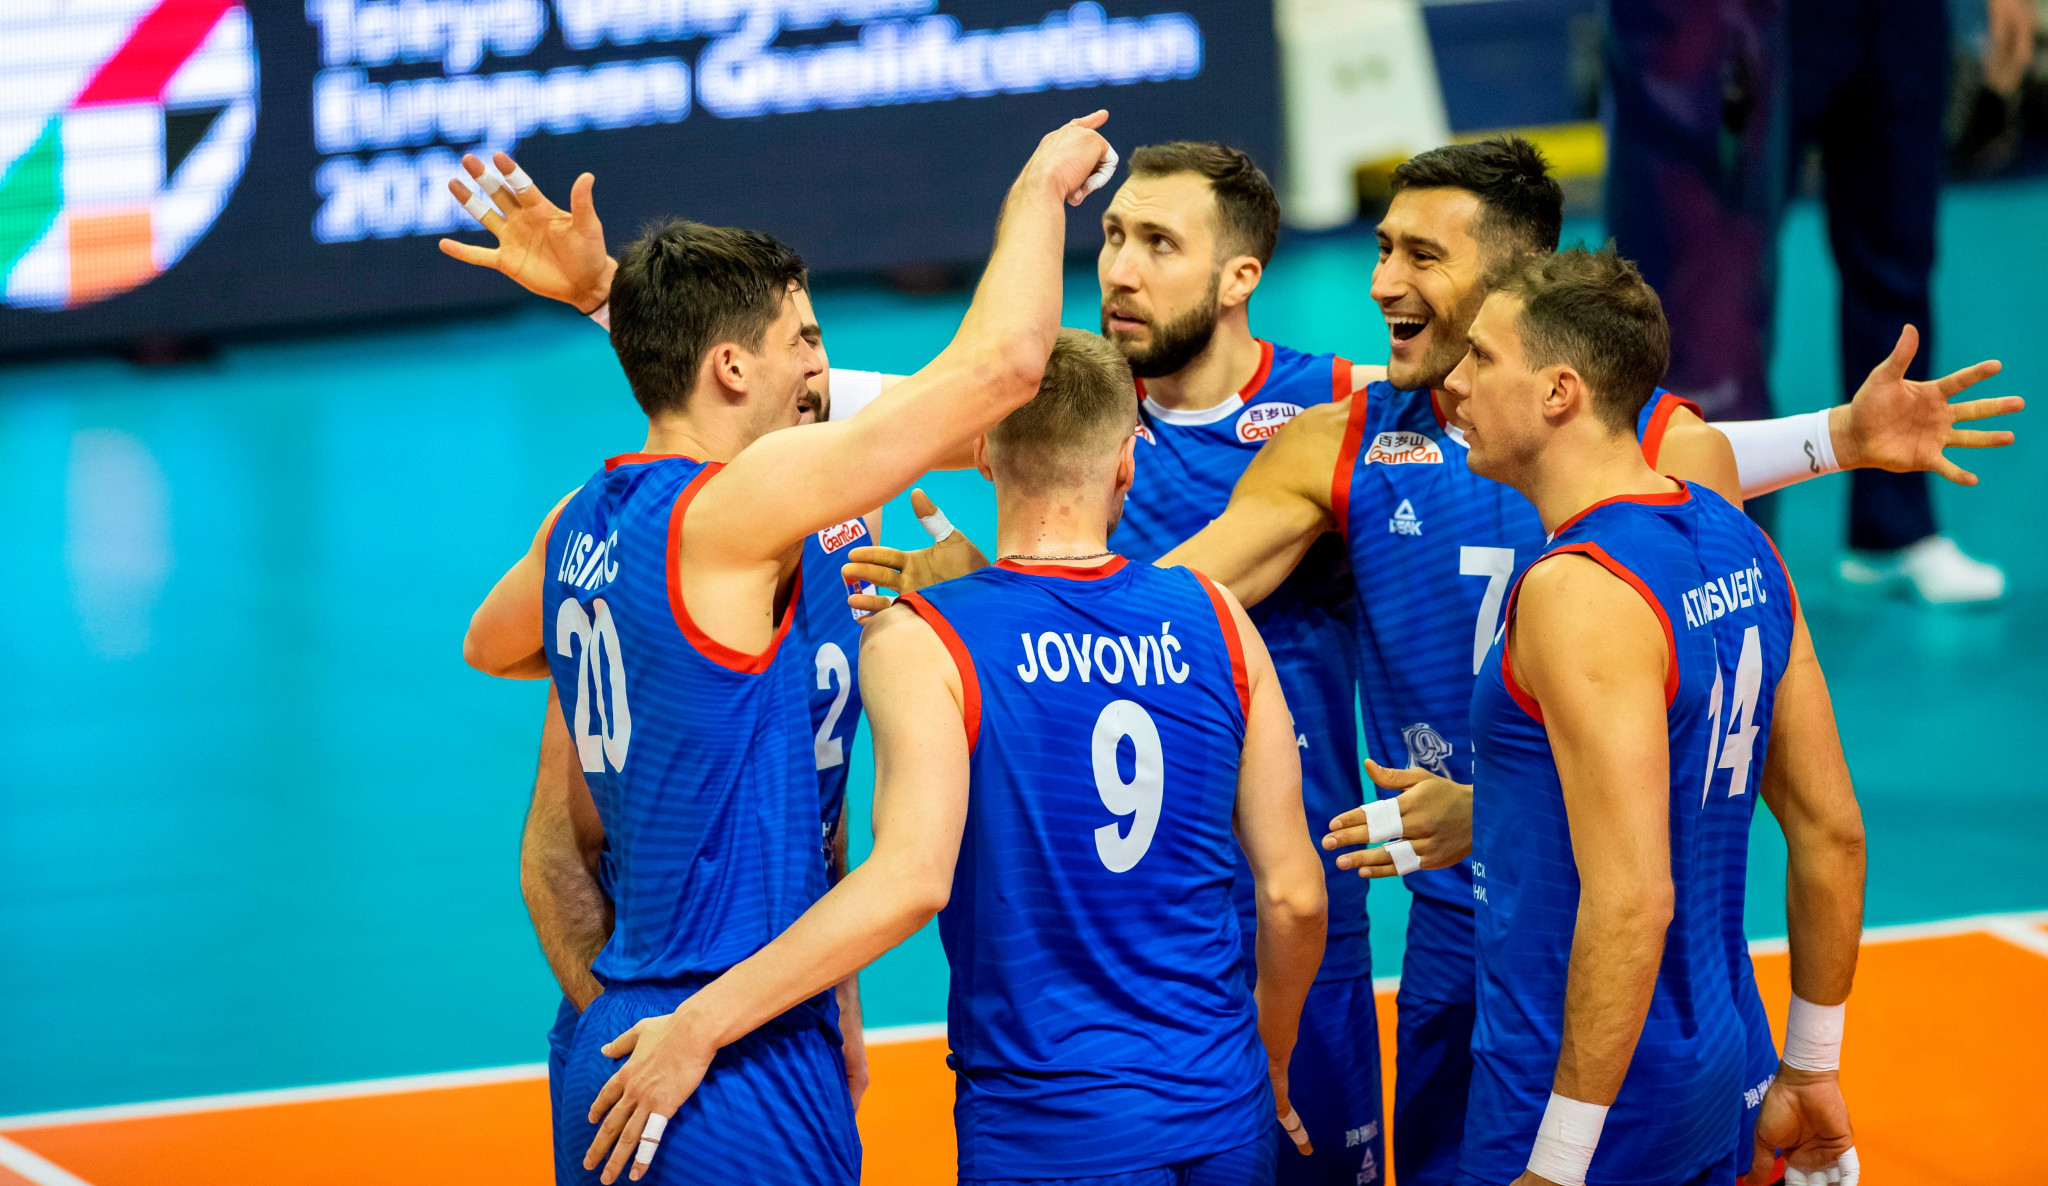 Serbia and Netherlands come through five-set matches to reach Men's EuroVolley quarter-finals